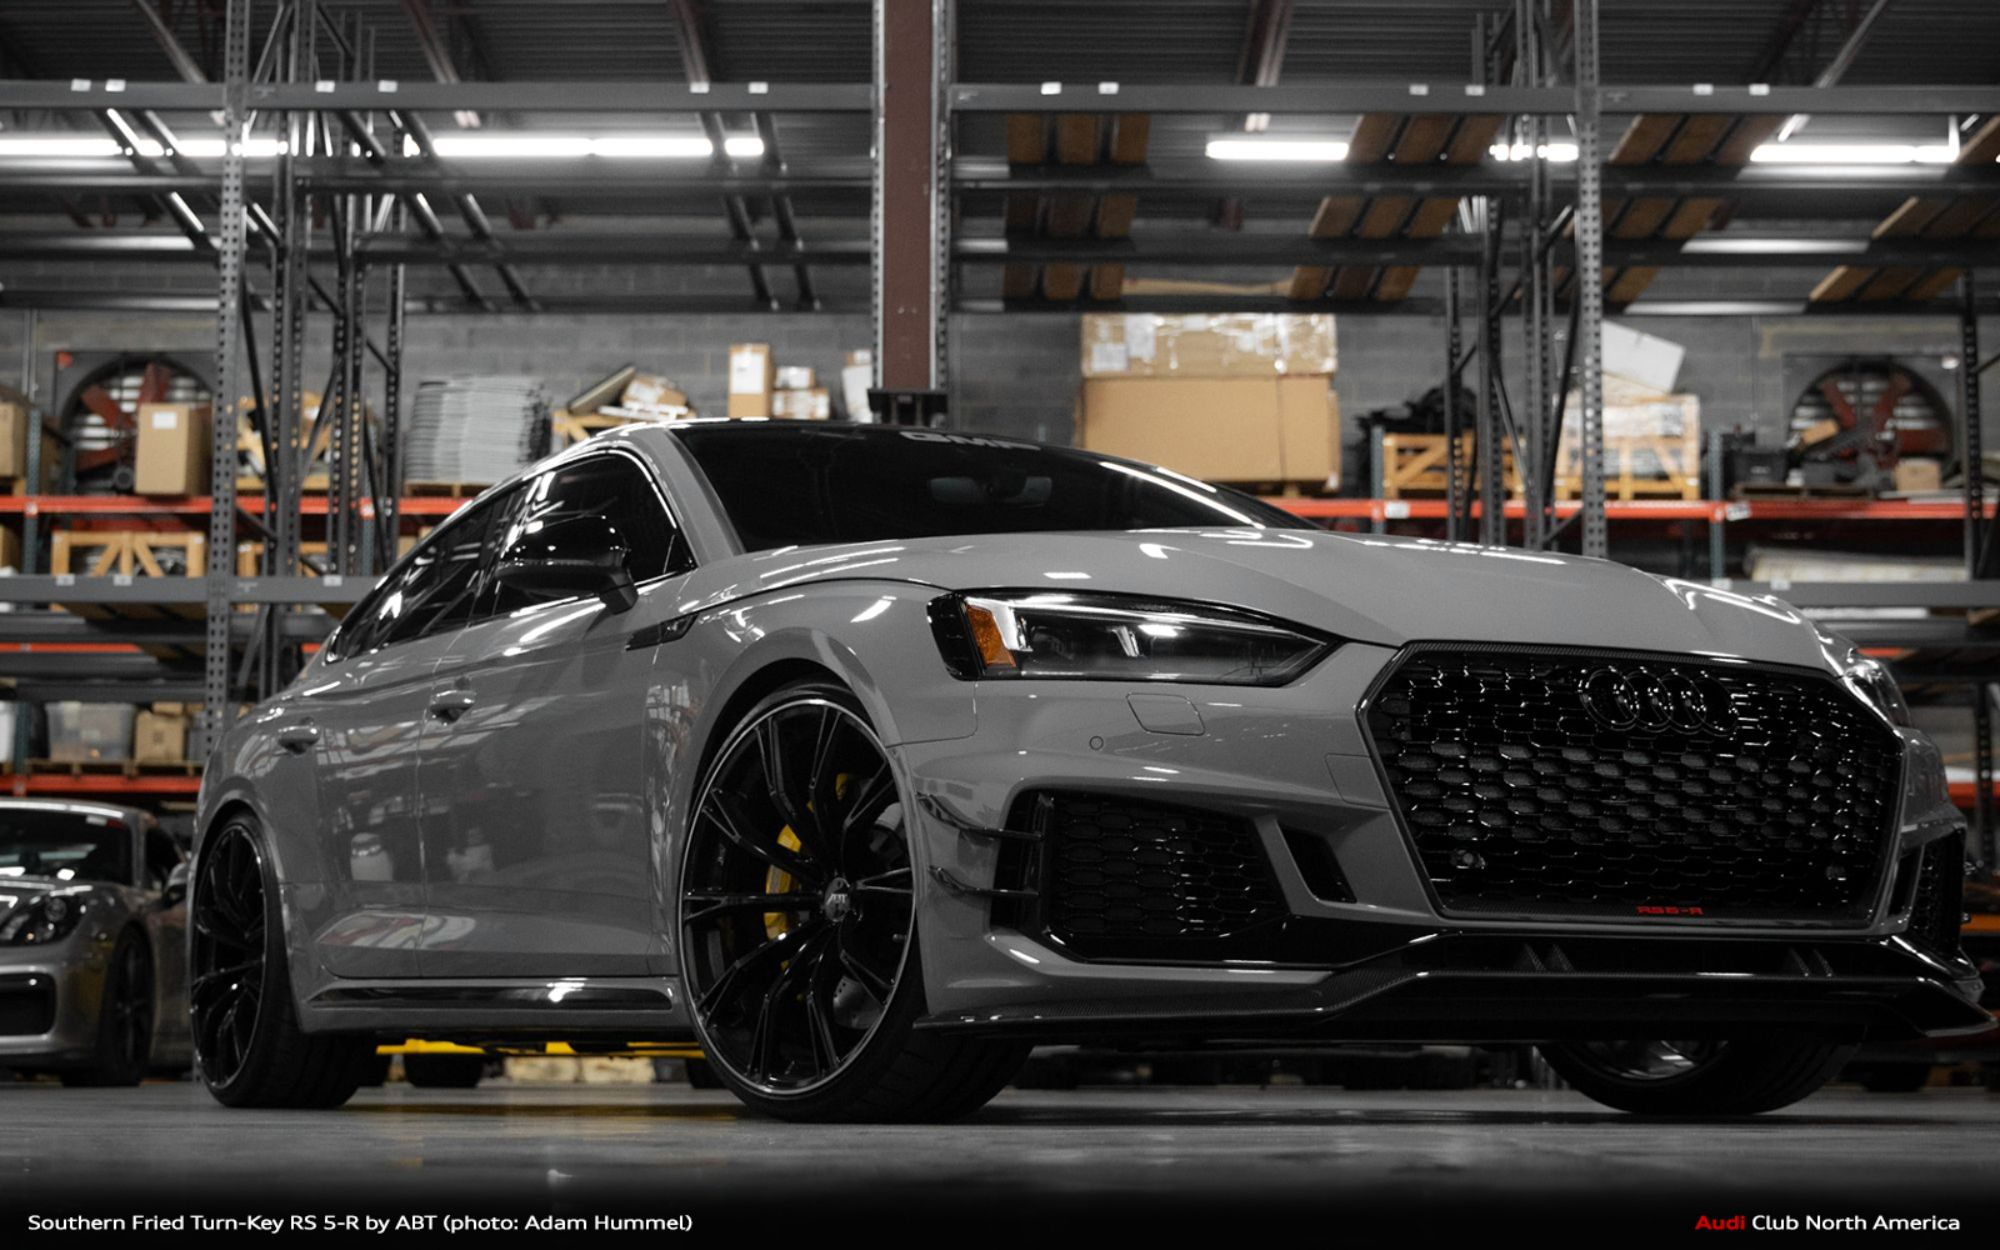 Southern Fried Turn-Key RS 5-R by ABT